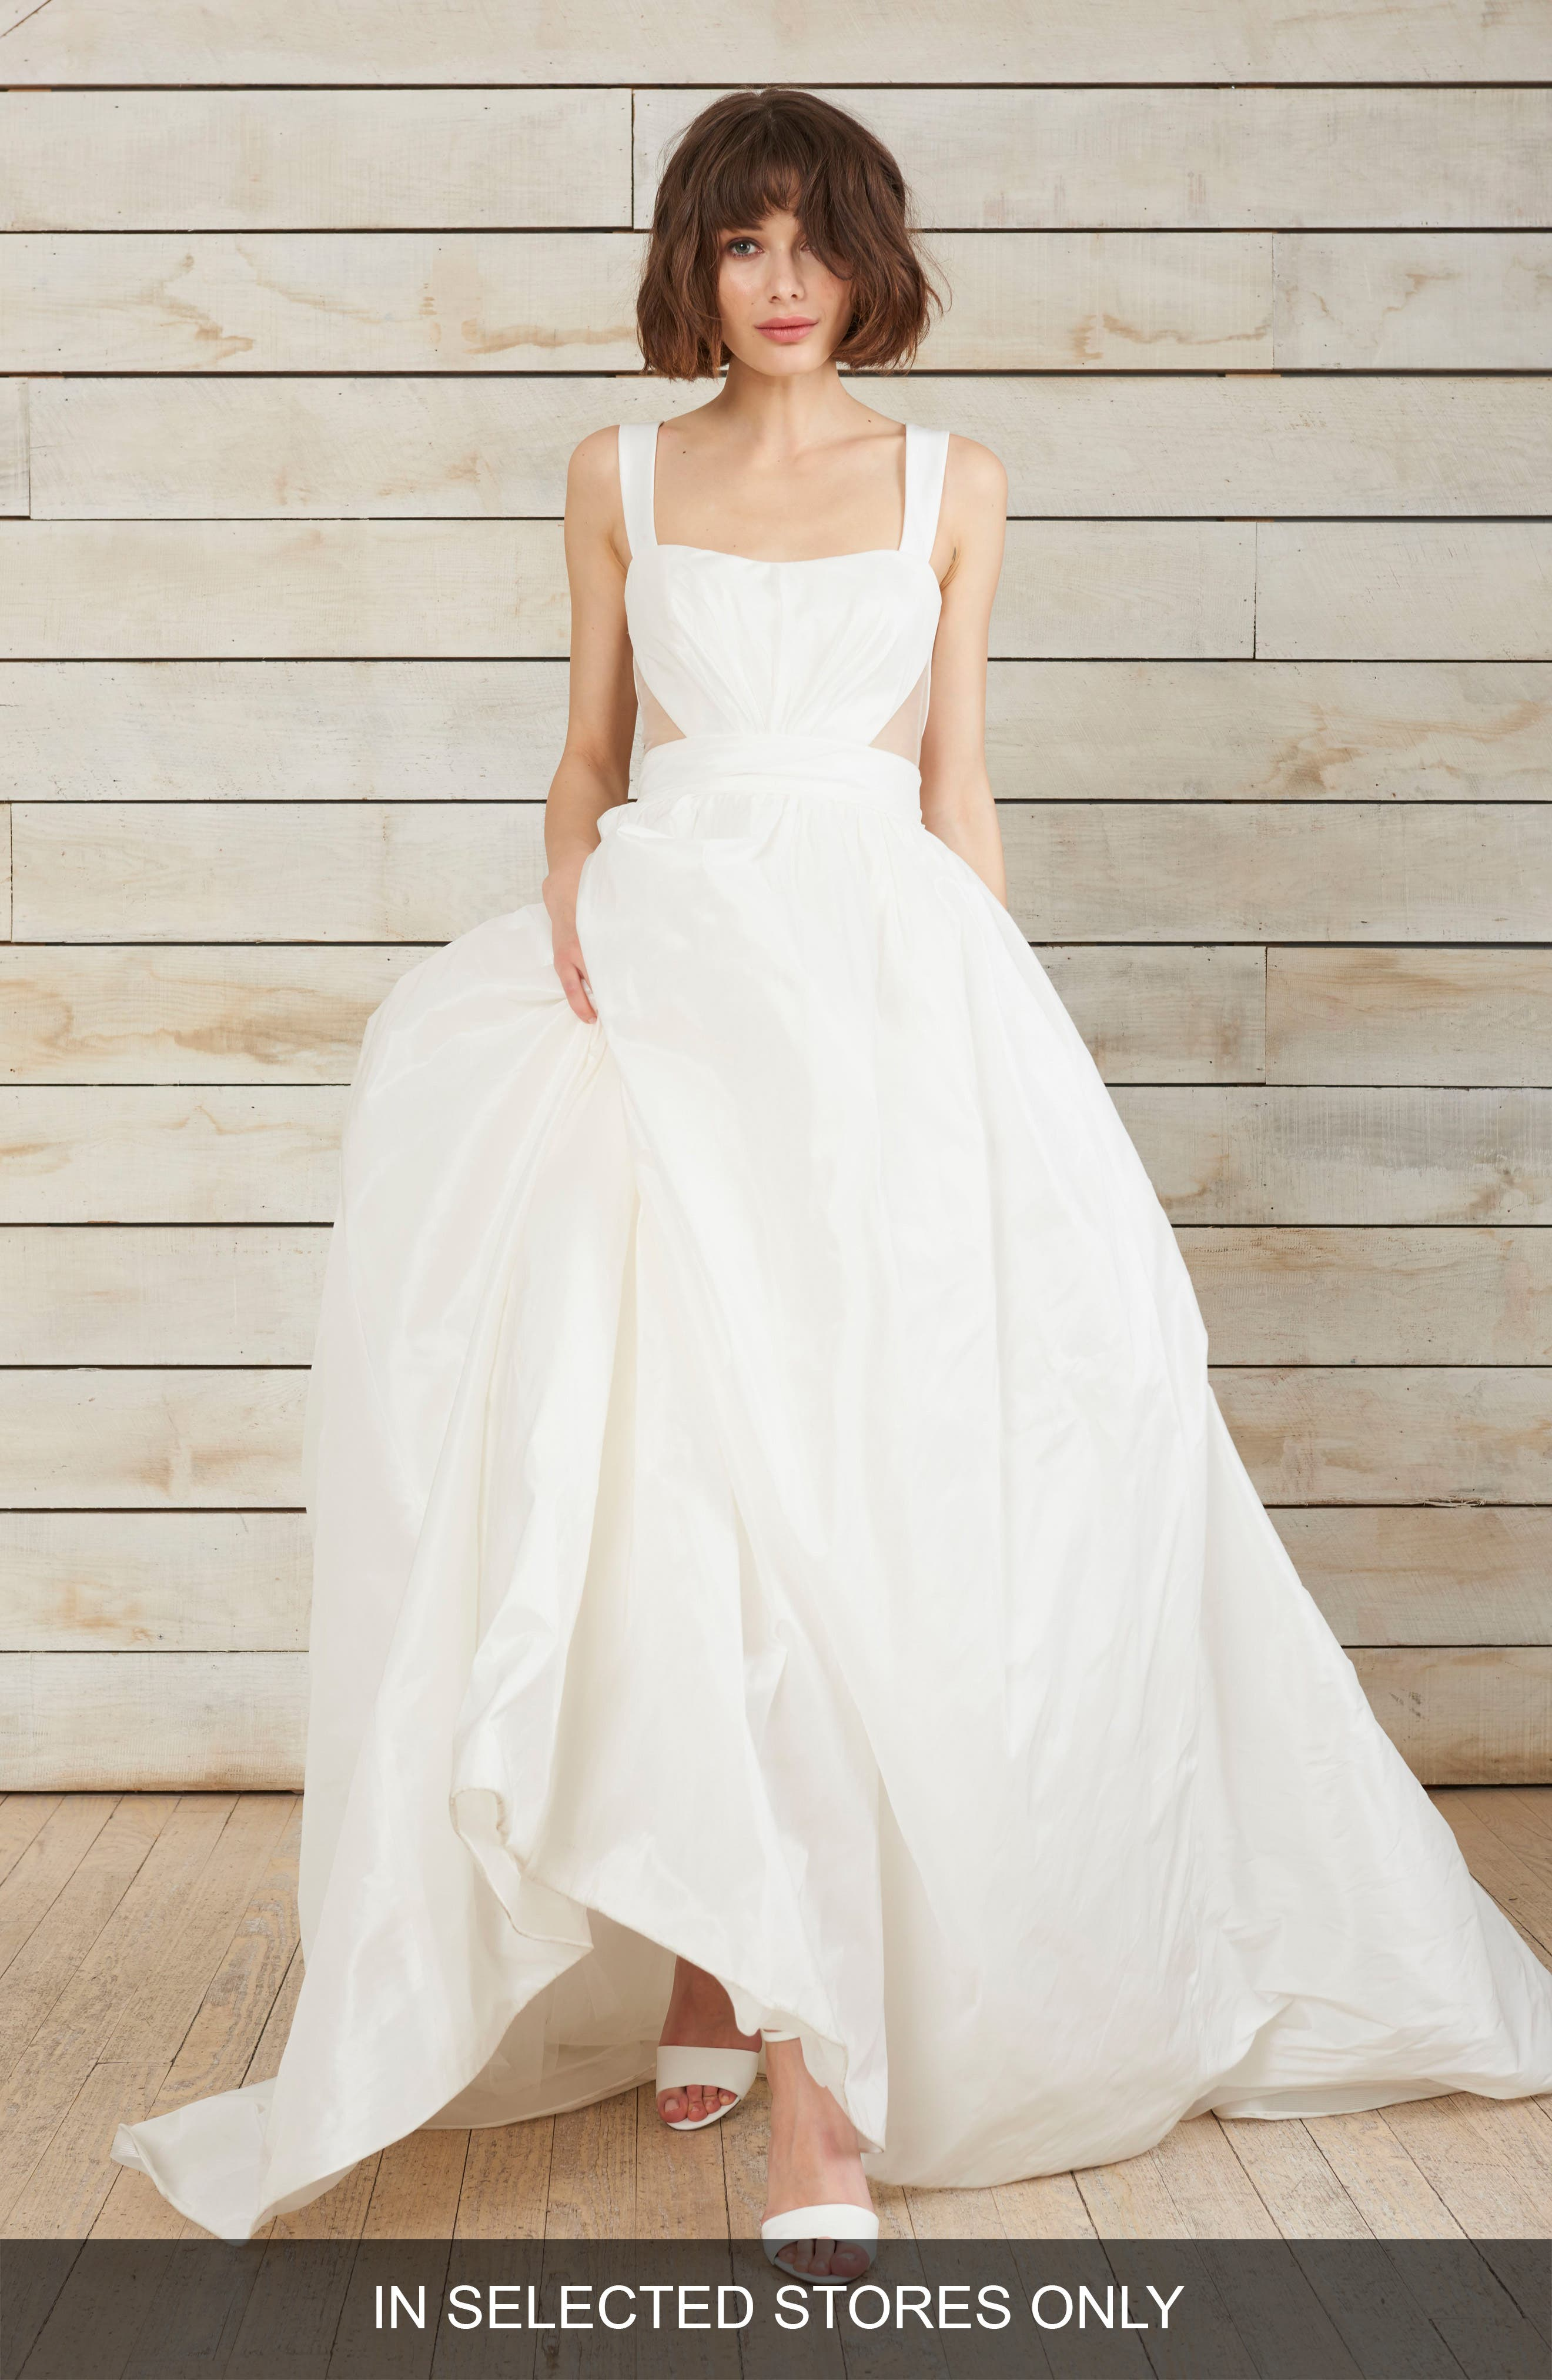 Nouvelle Amsale Cris Triangle Cutout Taffeta Ballgown, Size IN STORE ONLY - Ivory